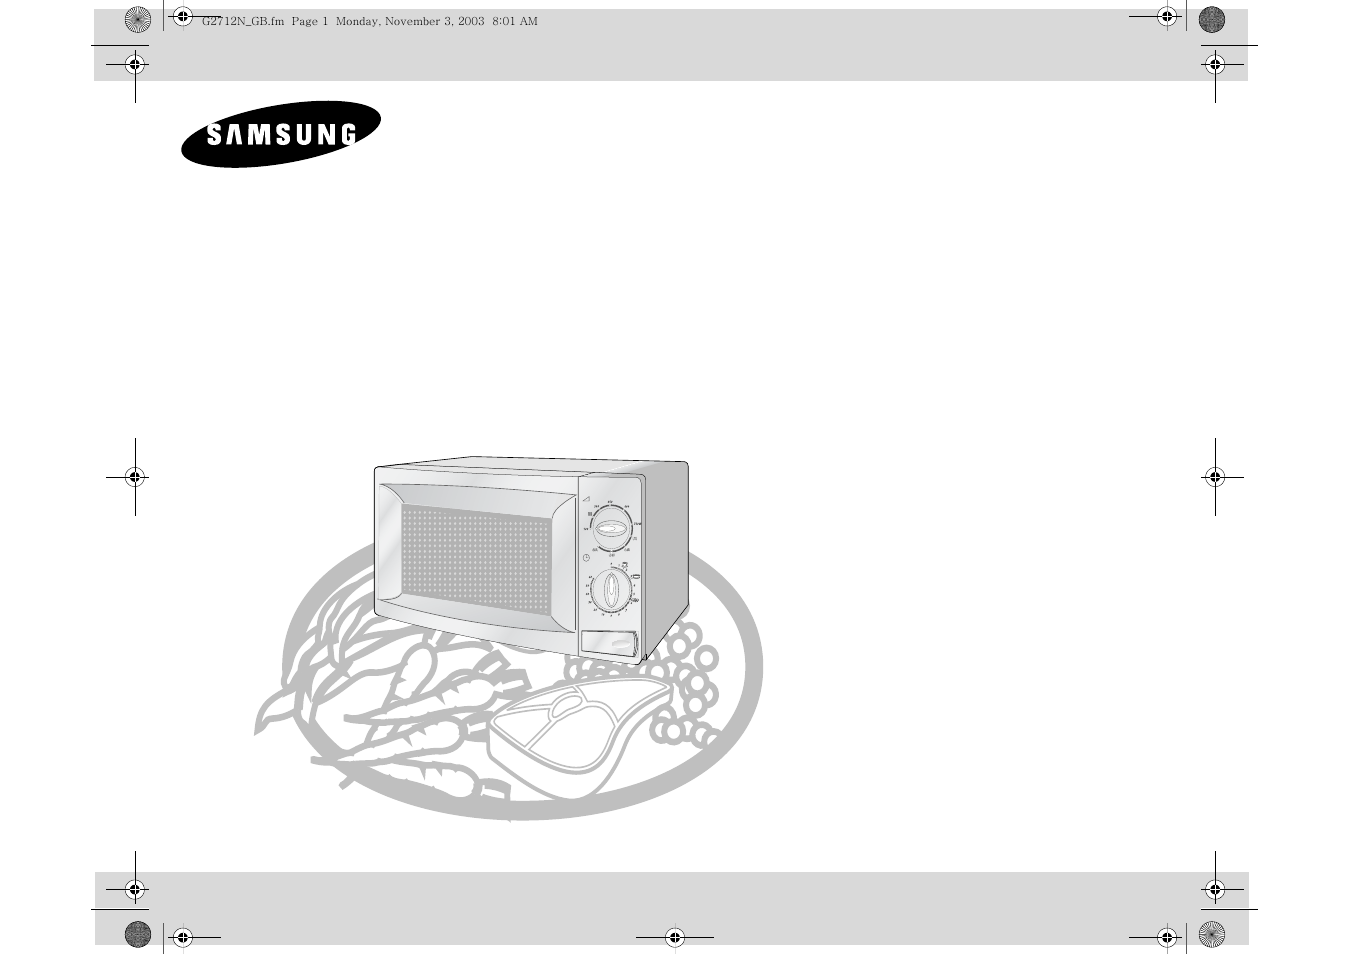 samsung g2712n user manual 16 pages rh manualsdir com samsung microwave guide samsung microwave guide cover